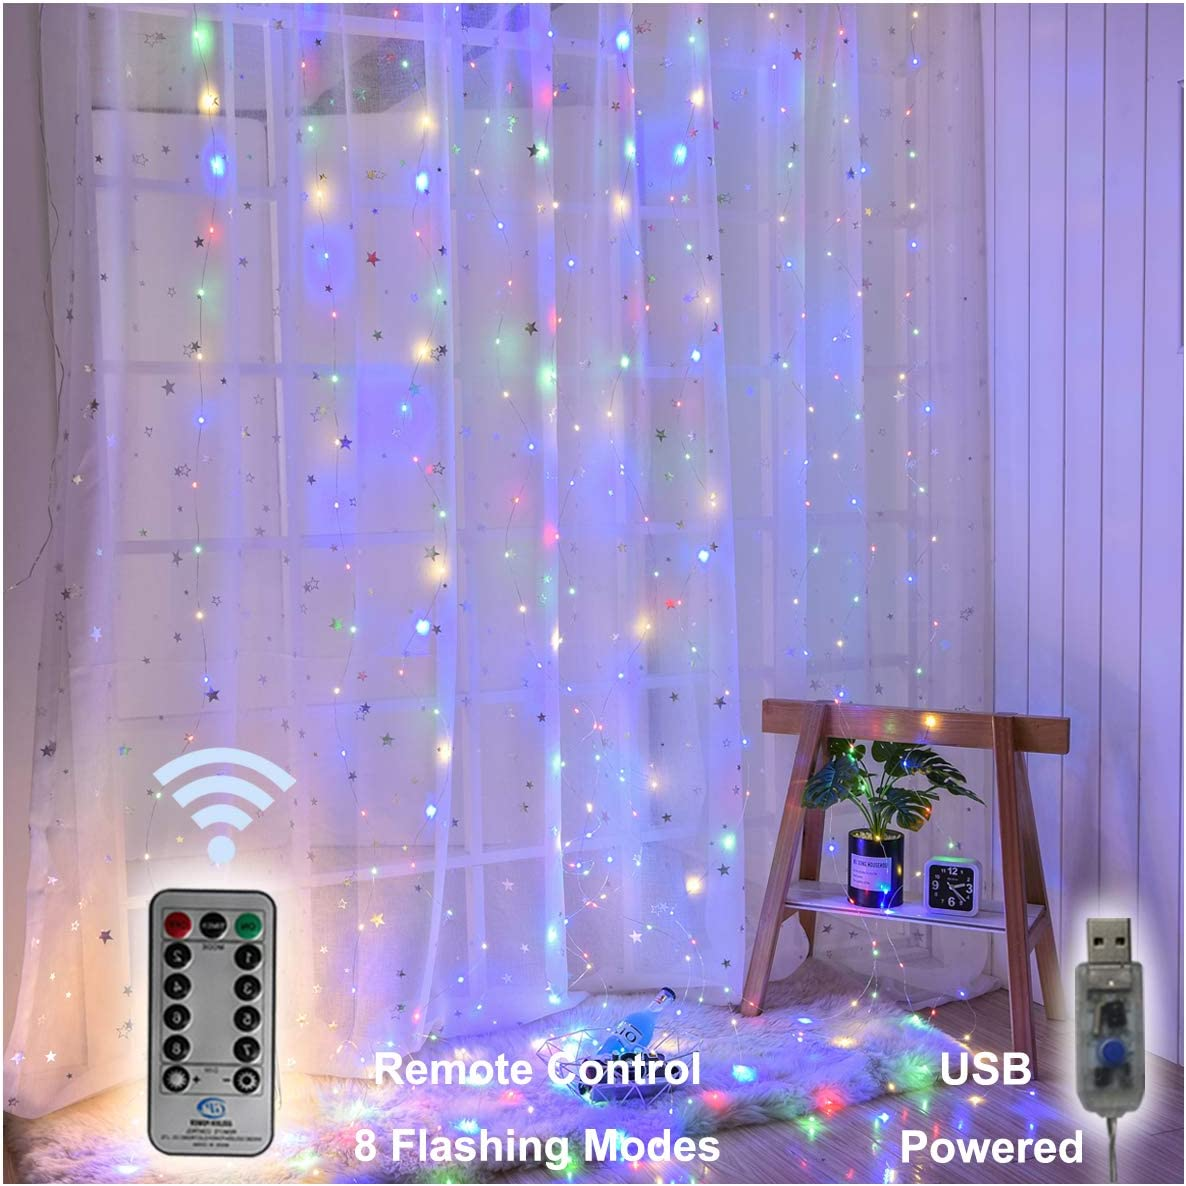 String Lights, 300 LED Window Curtain Twinkle Starry Lights, 8 Lighting Modes, Remote Control for Wedding, Party, Garden, Festival, Holiday Decorations – Multi Color